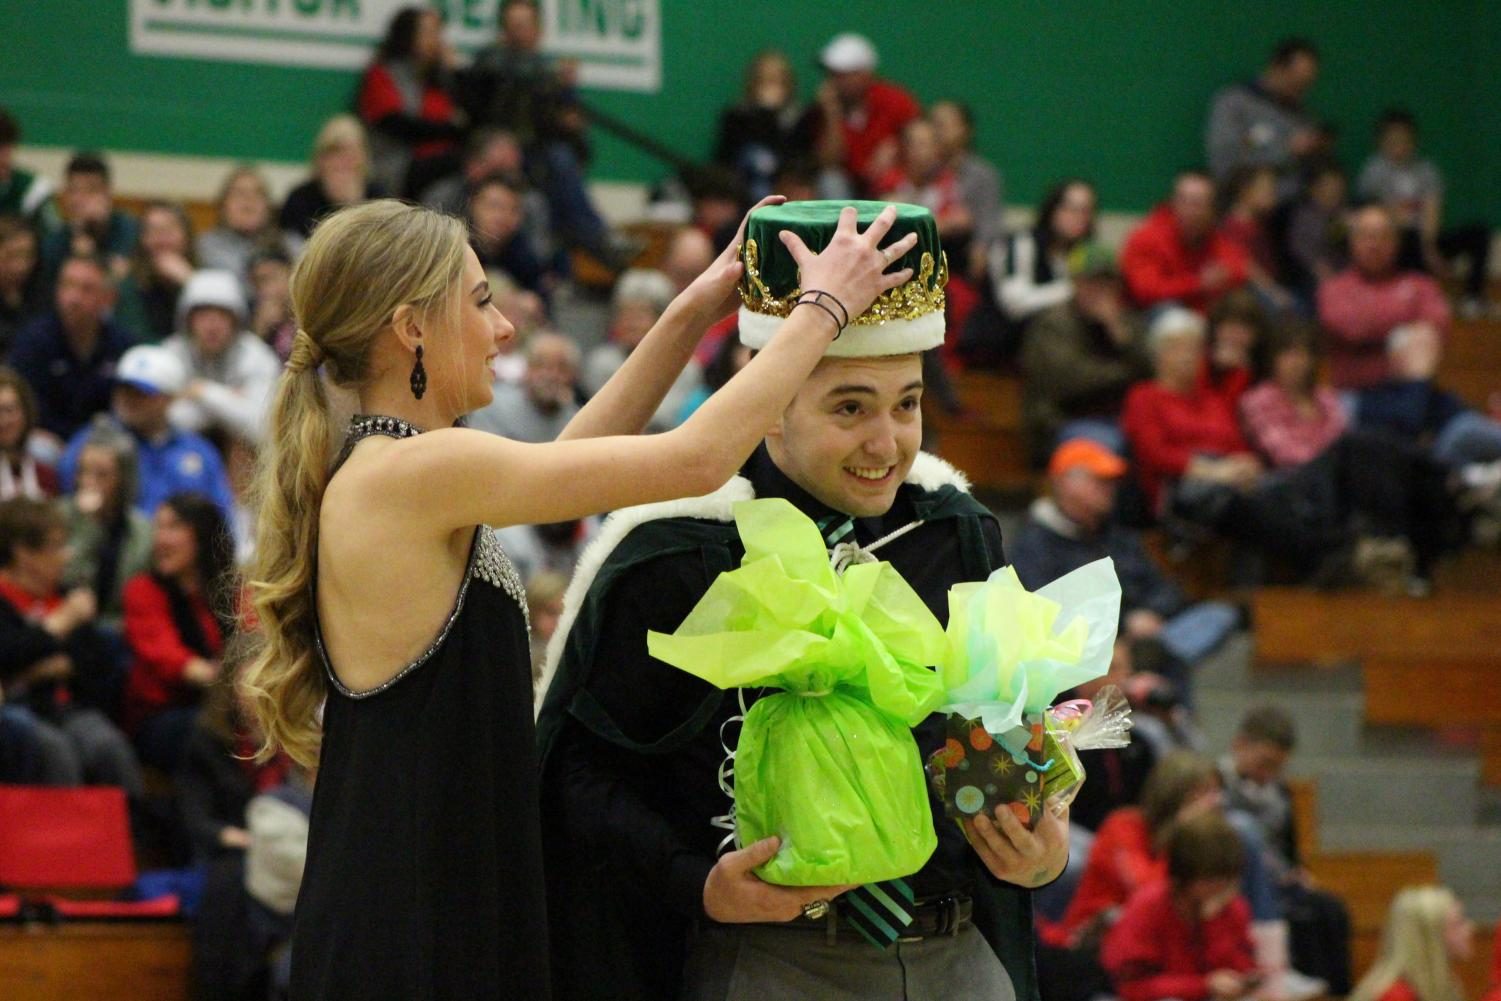 Senior Taylor Silva readjusts the crown on senior Brett Westerman's head.